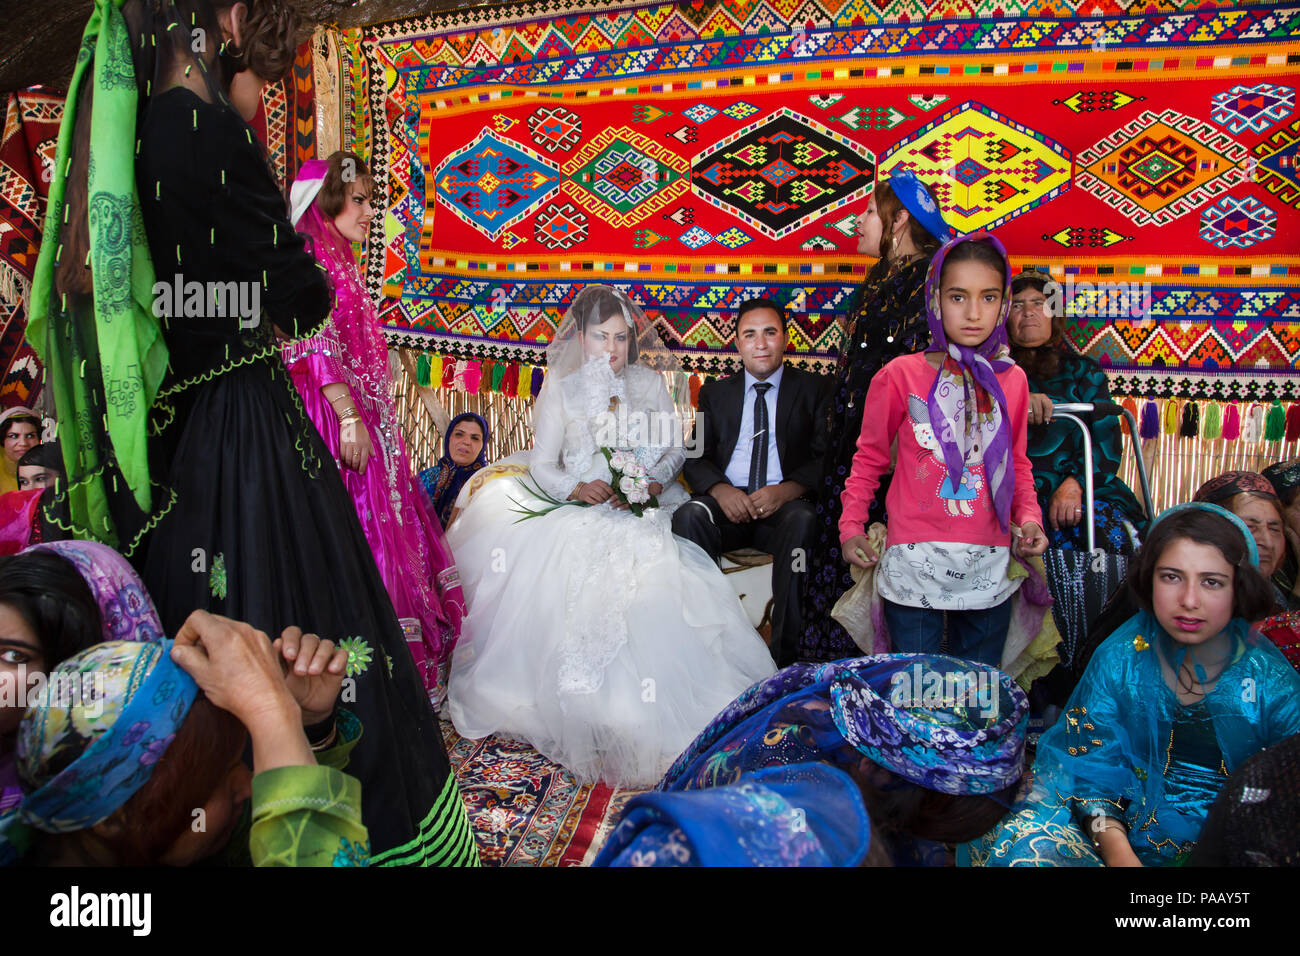 Qashqai traditional wedding ceremony nomad people, Iran - Stock Image